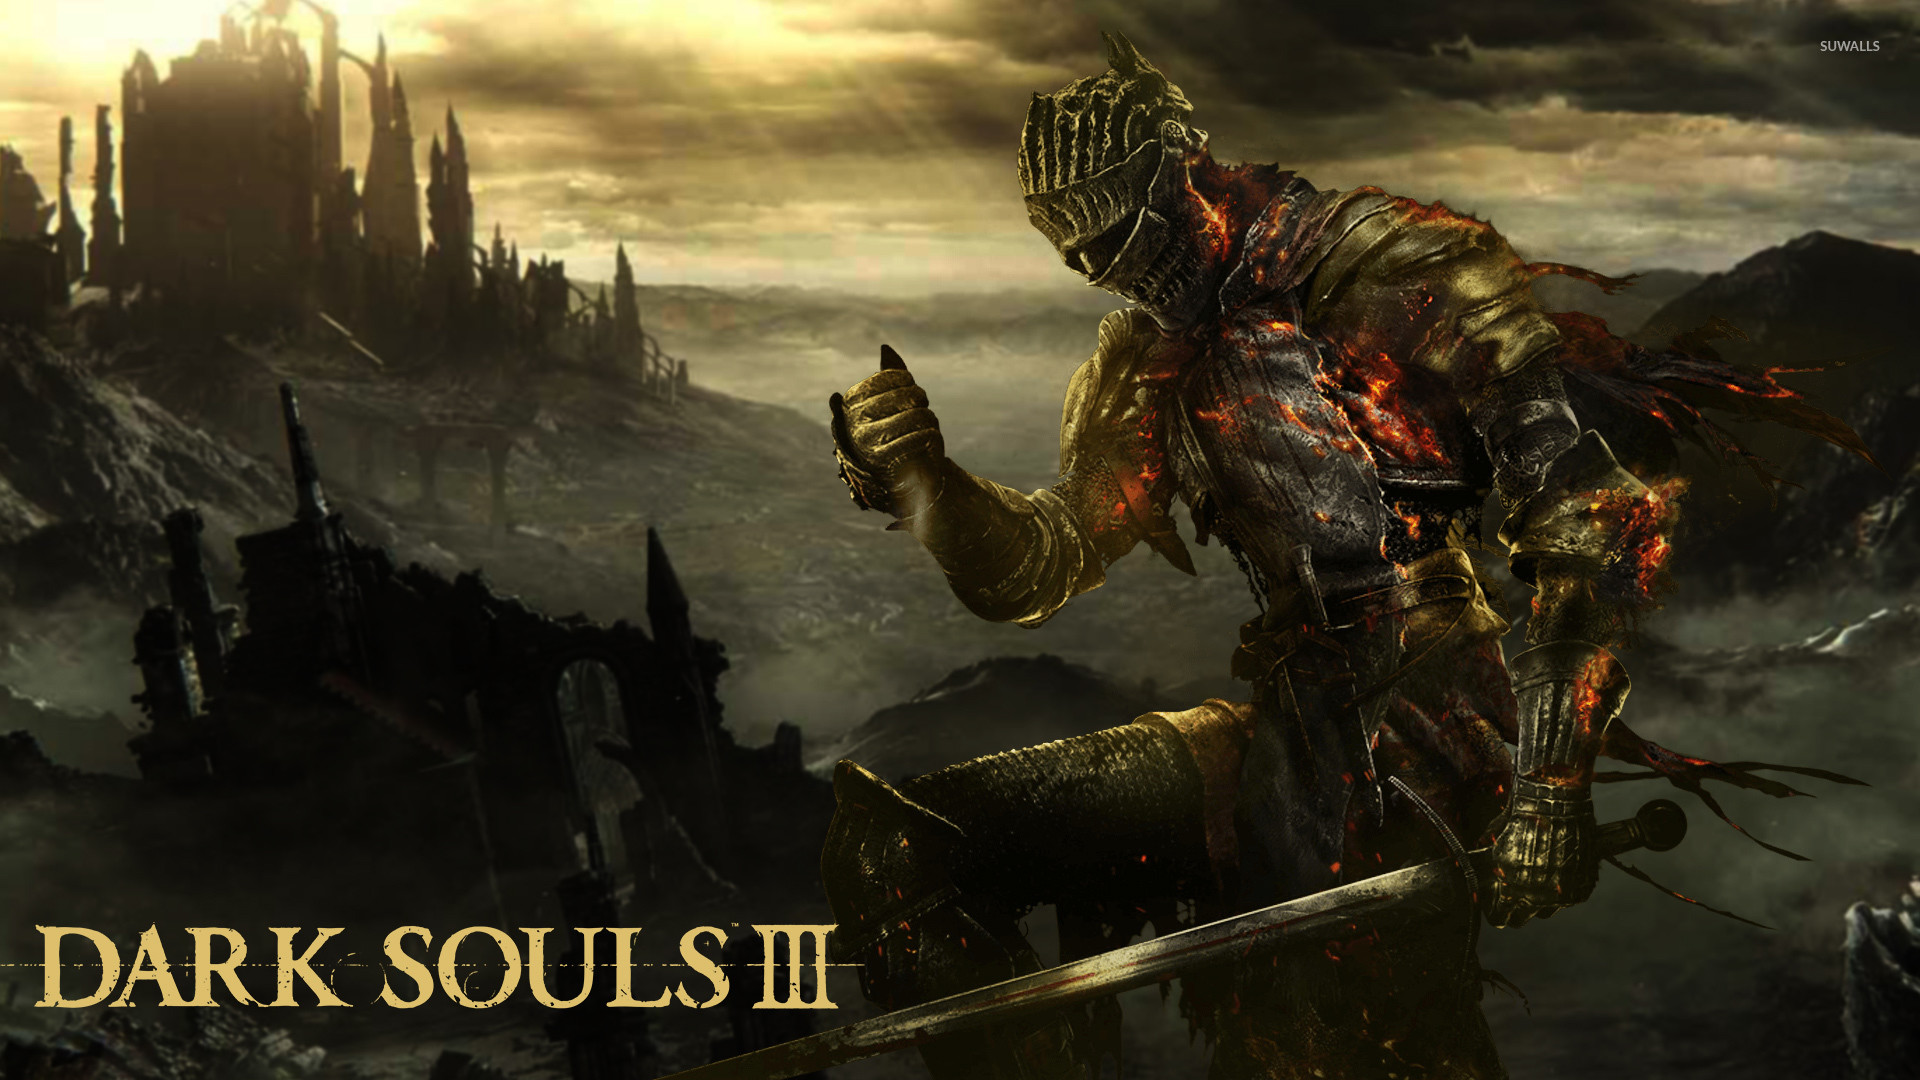 1920x1080 Dark Souls Iii Wallpaper Desktop Background Is 4K Wallpaper